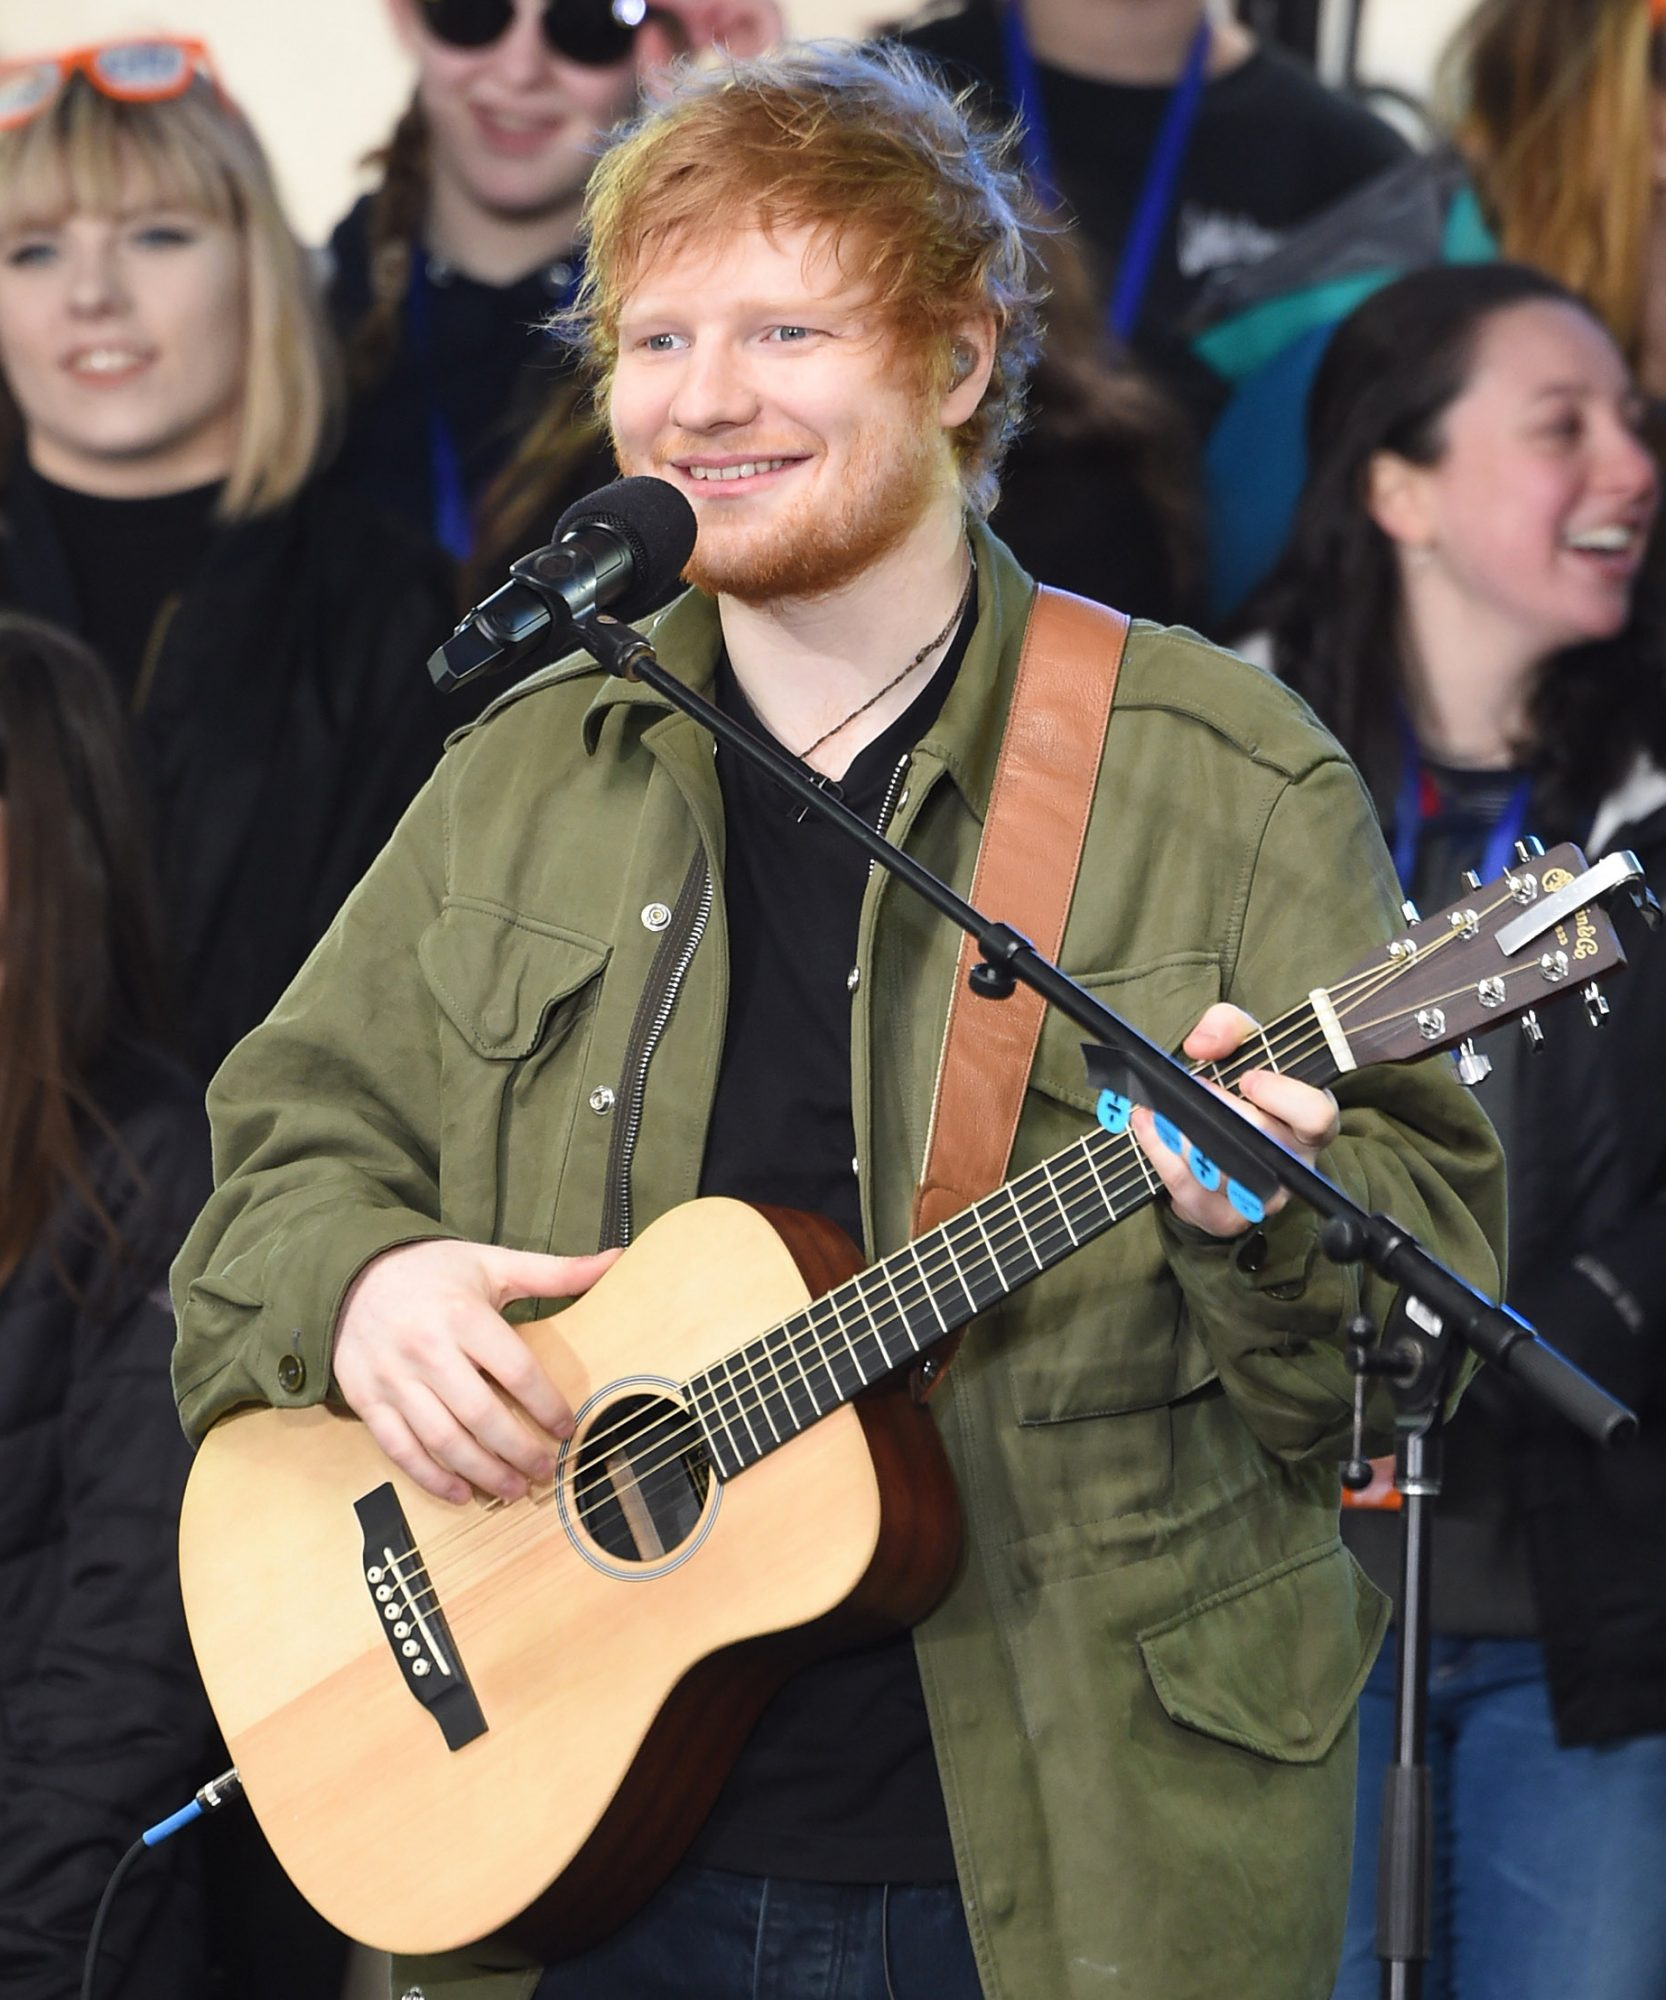 Ed Sheeran Is Going on Tour This Summer—Here's Where to See Him Live